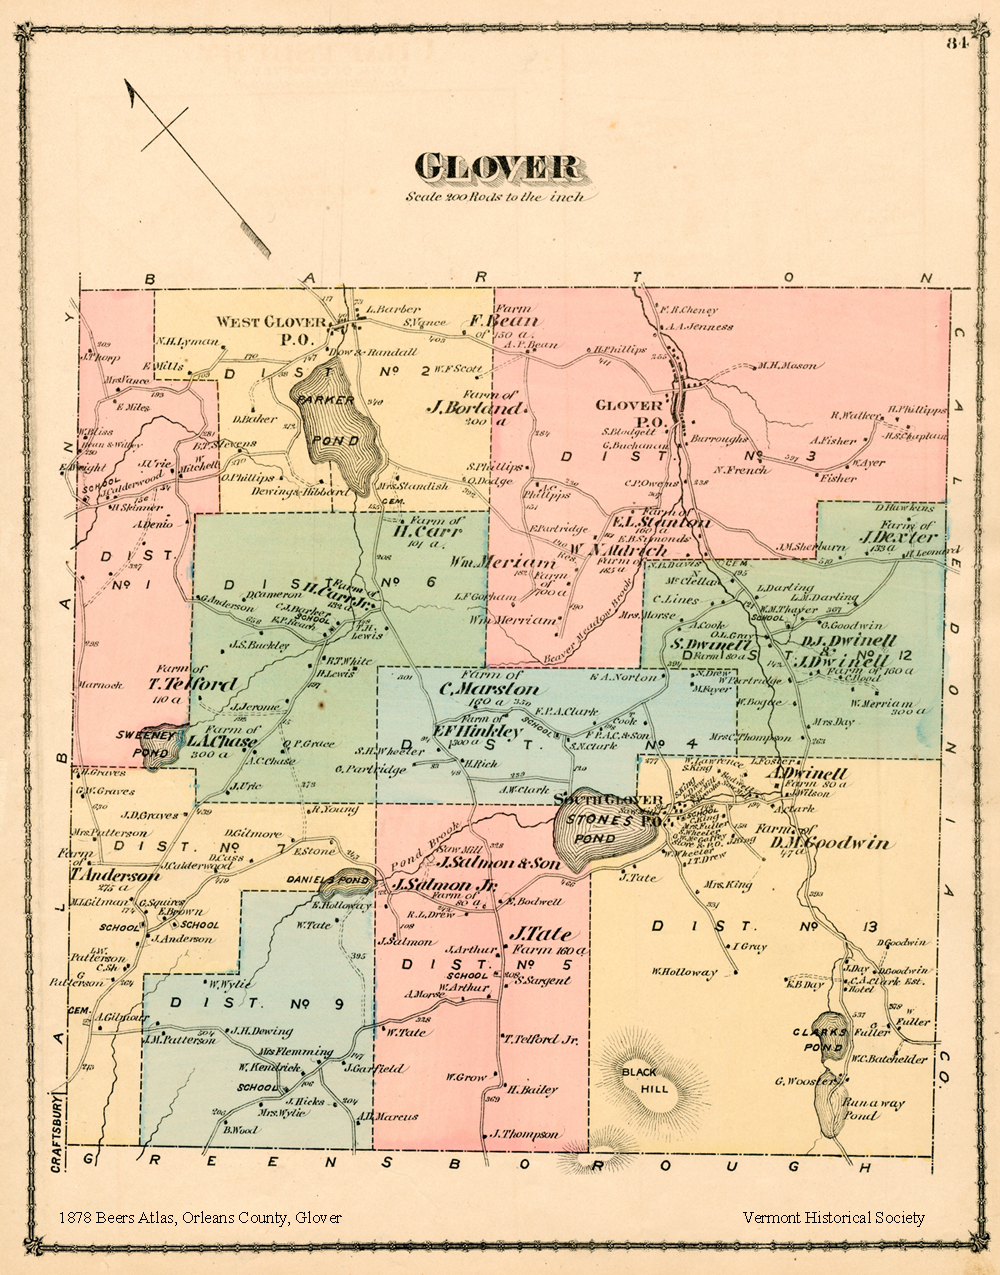 1878 Map of Glover, Vermont